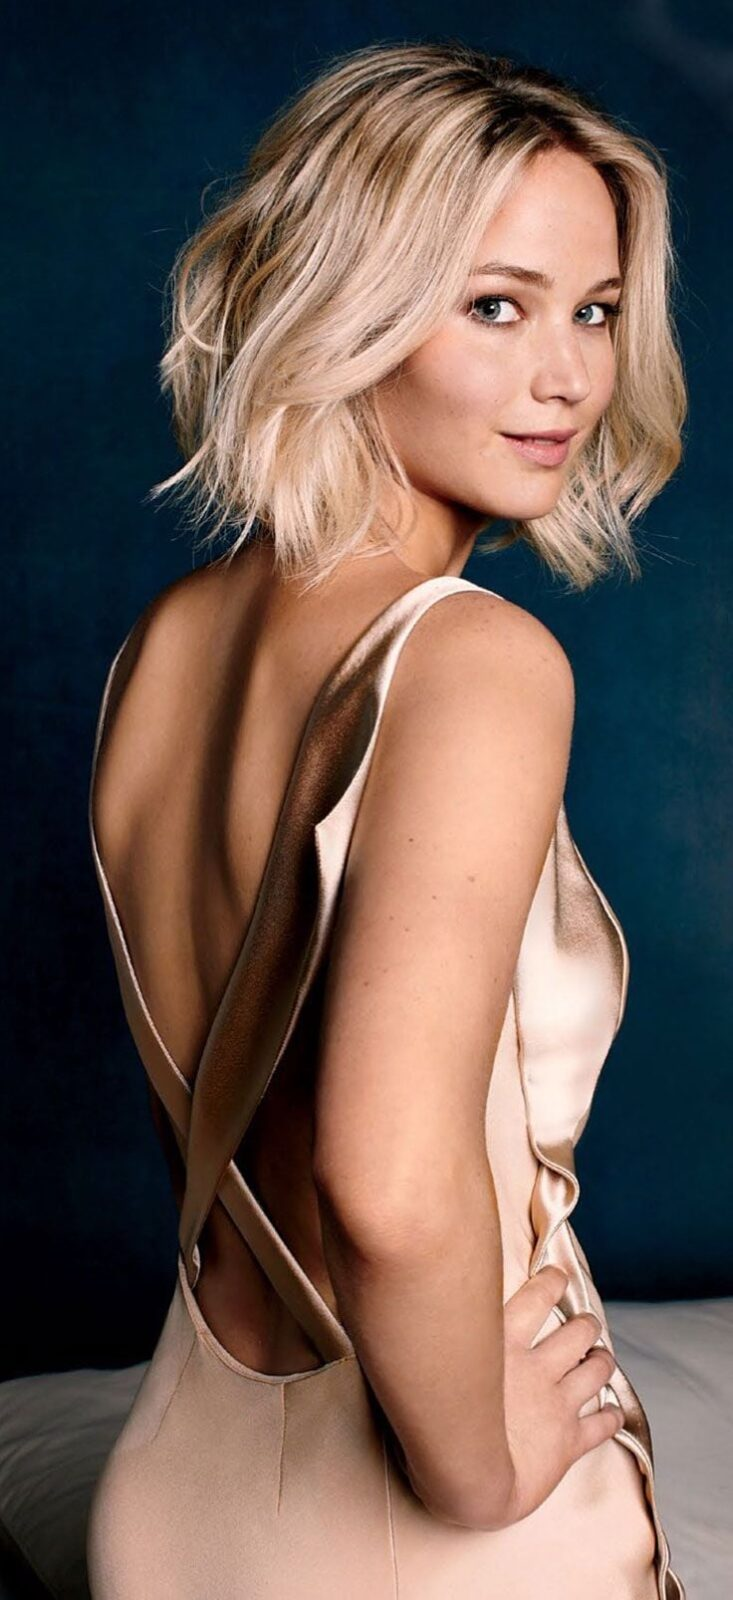 Blonde Jennifer Lawrence short hair HD wallpapers for mobiles